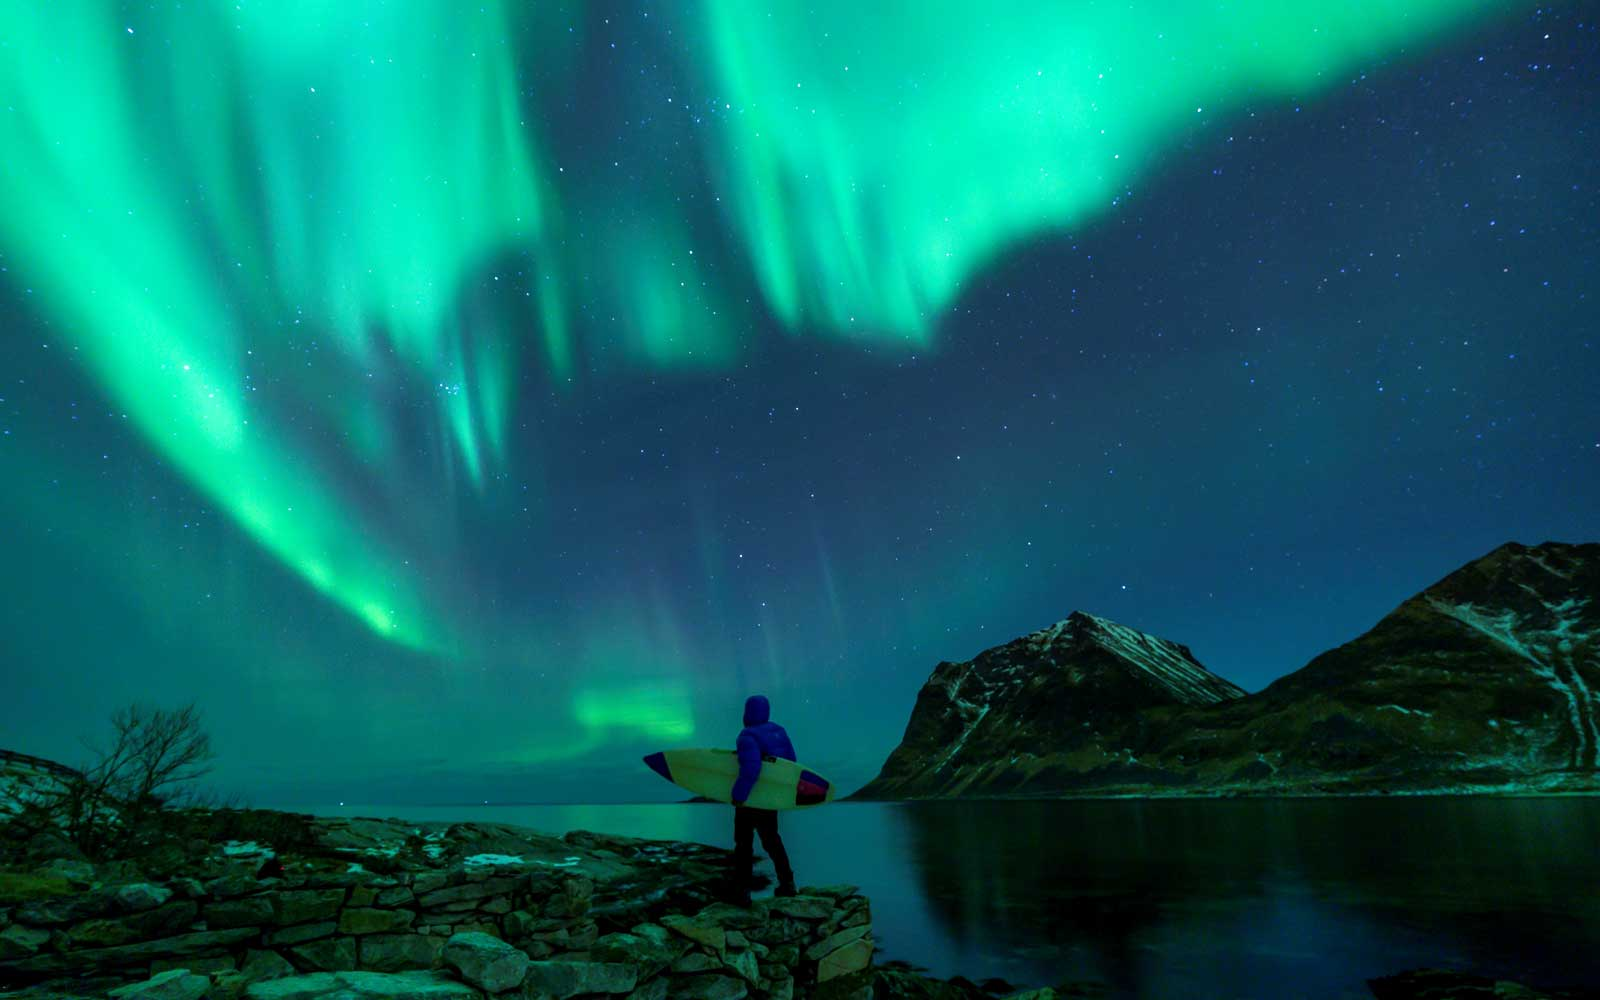 A surfer looks at Northern Lights on March 9, 2018 in Utakleiv, northern Norway, Lofoten islands, within the Arctic Circle.